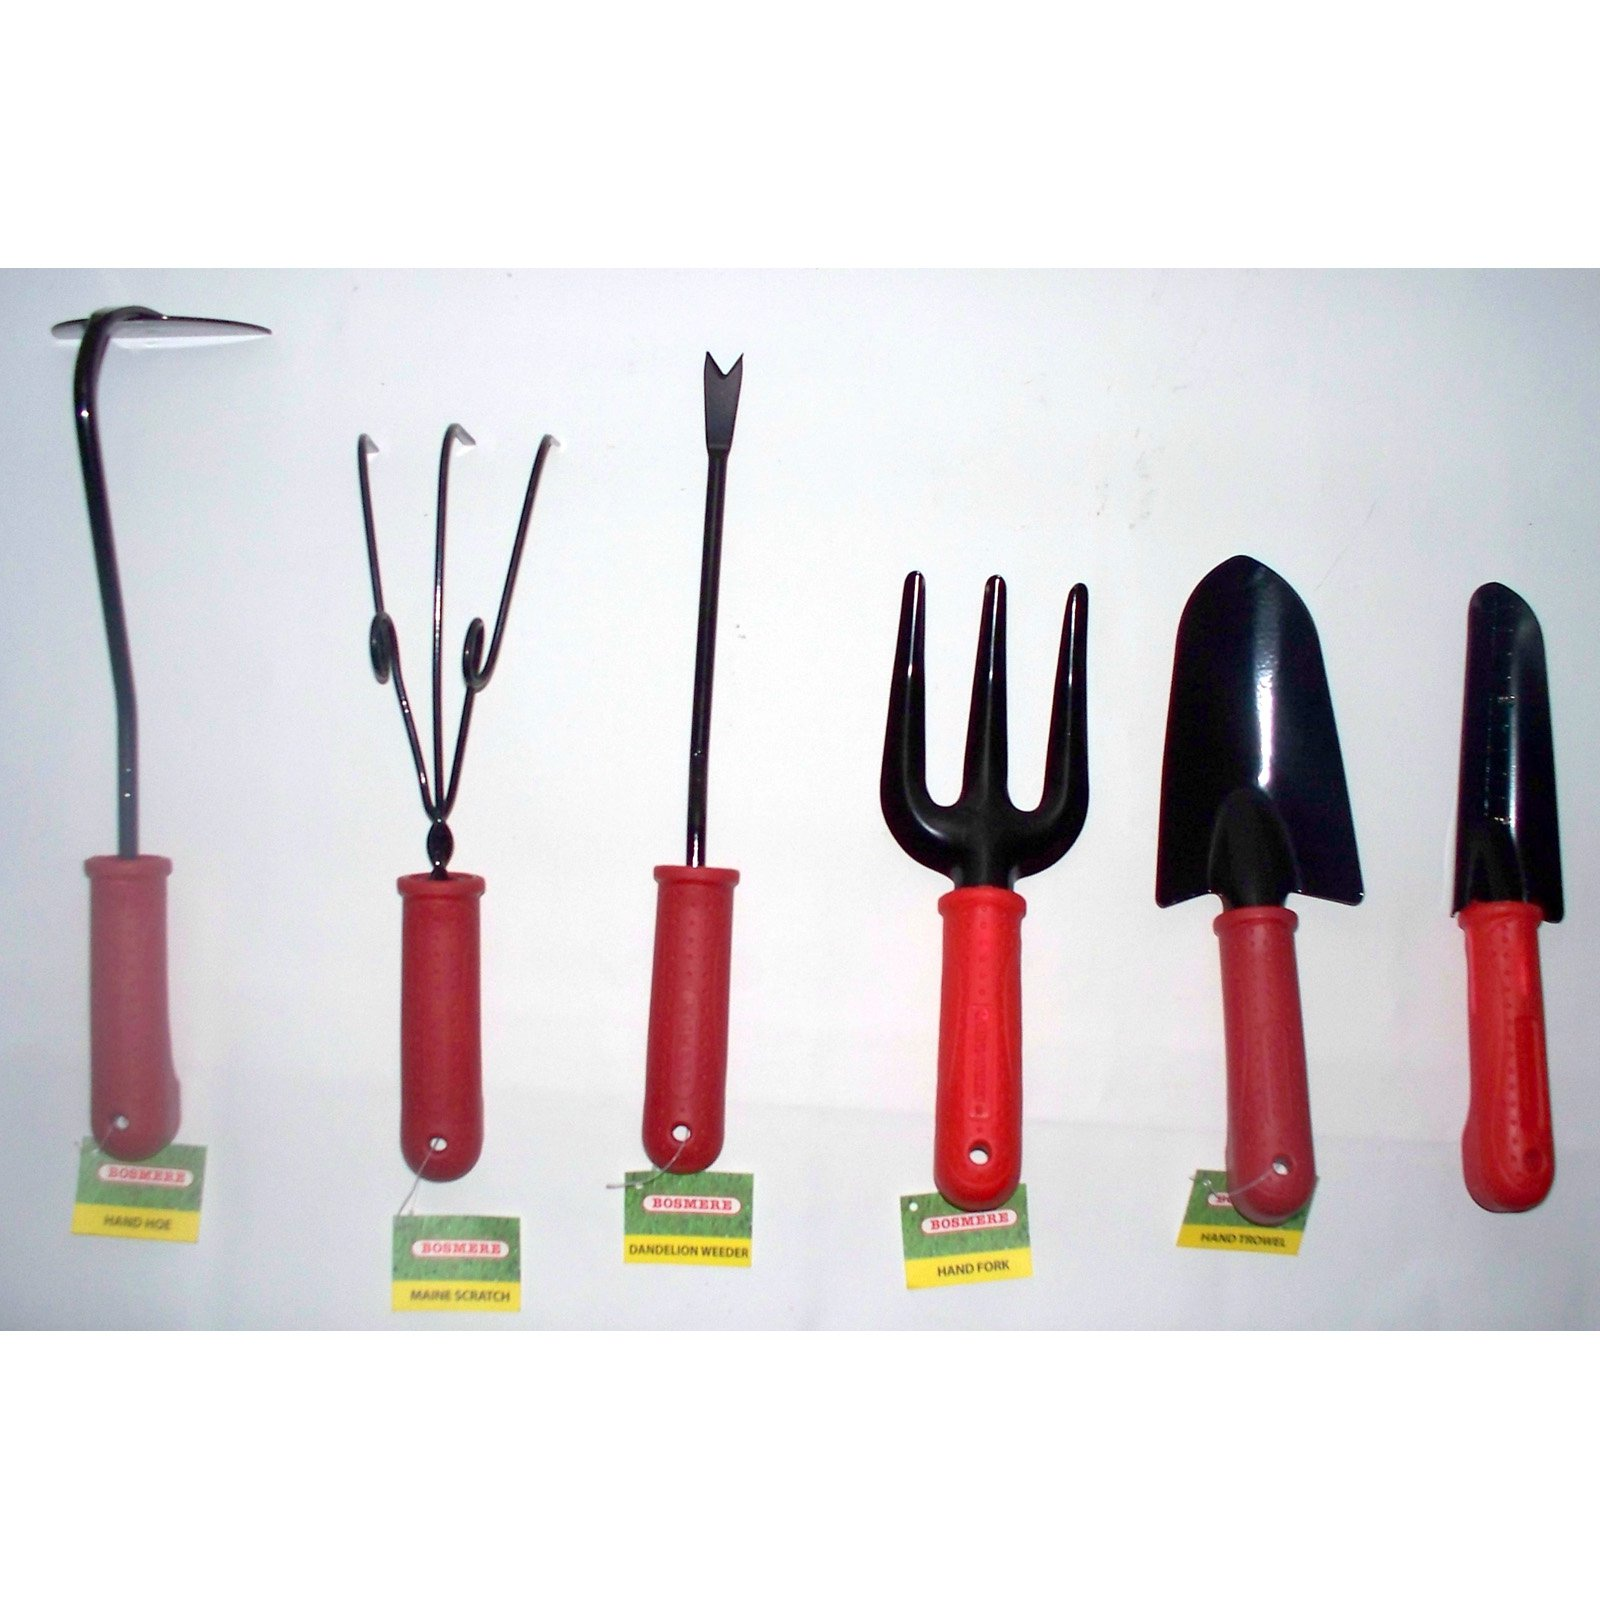 Bosmere Hand Tools with Red Handles - Set of 6